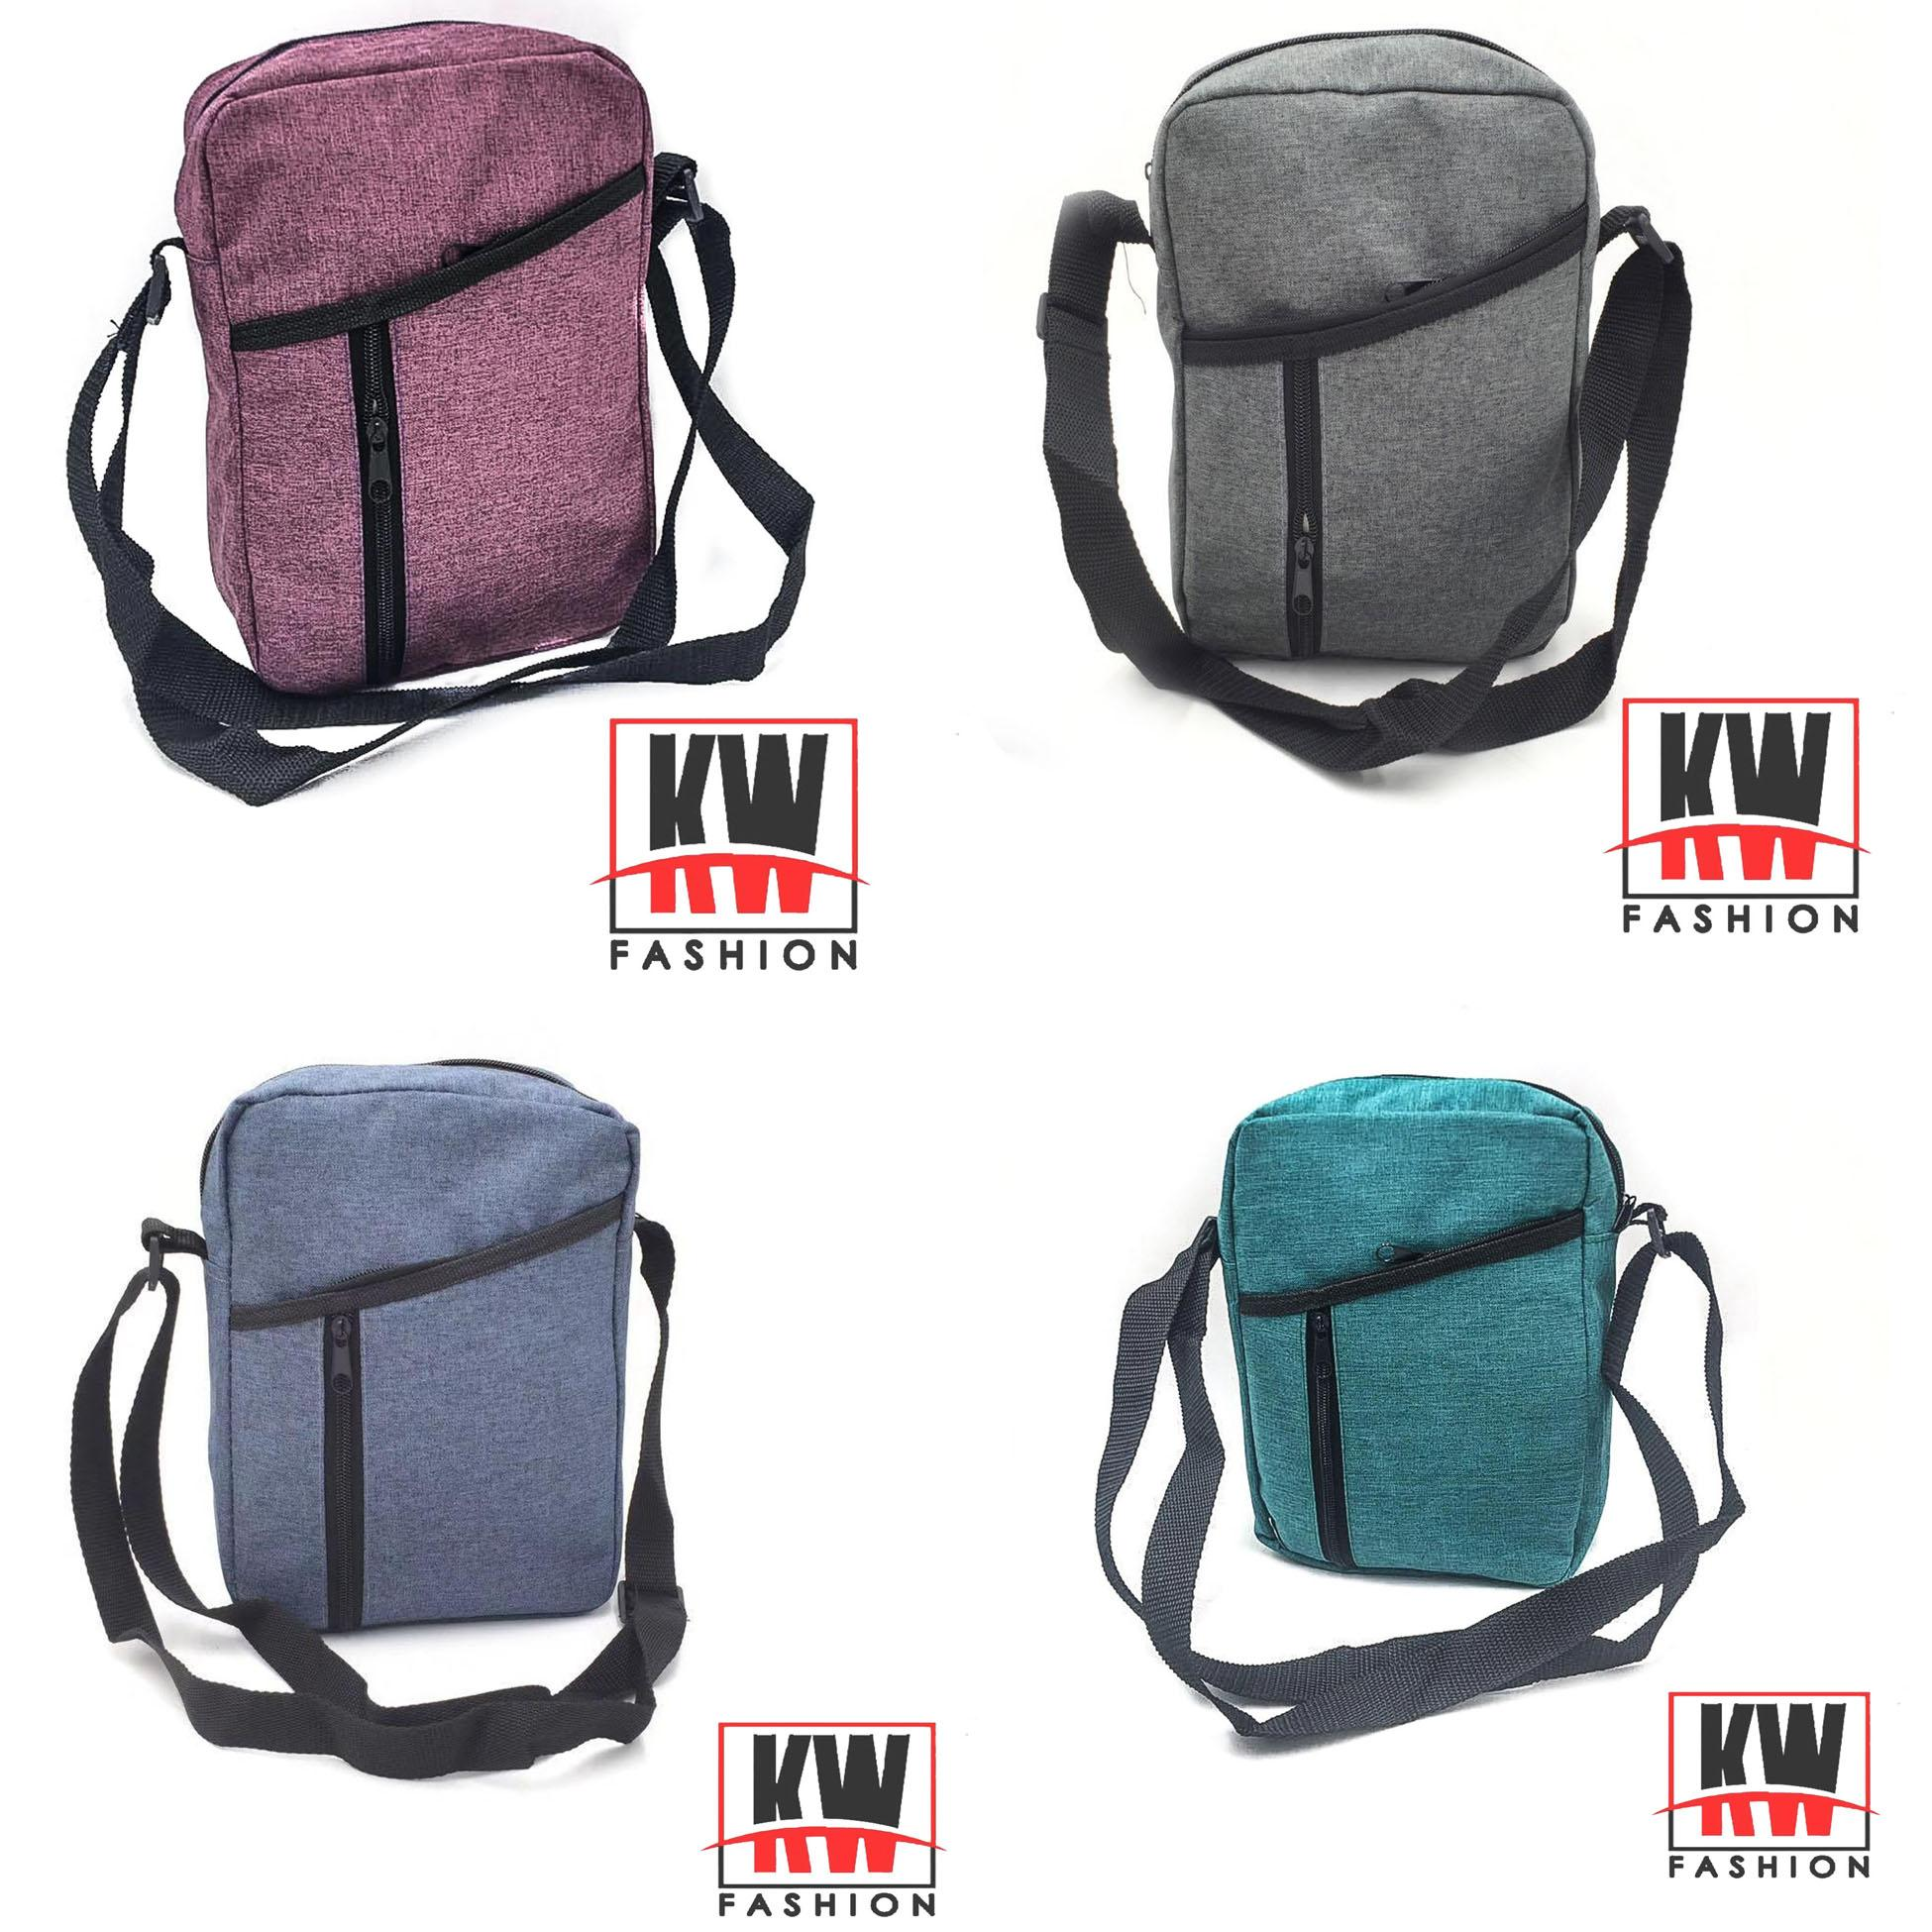 8584532f86 Sling Bags for Men for sale - Cross Bags for Men online brands ...